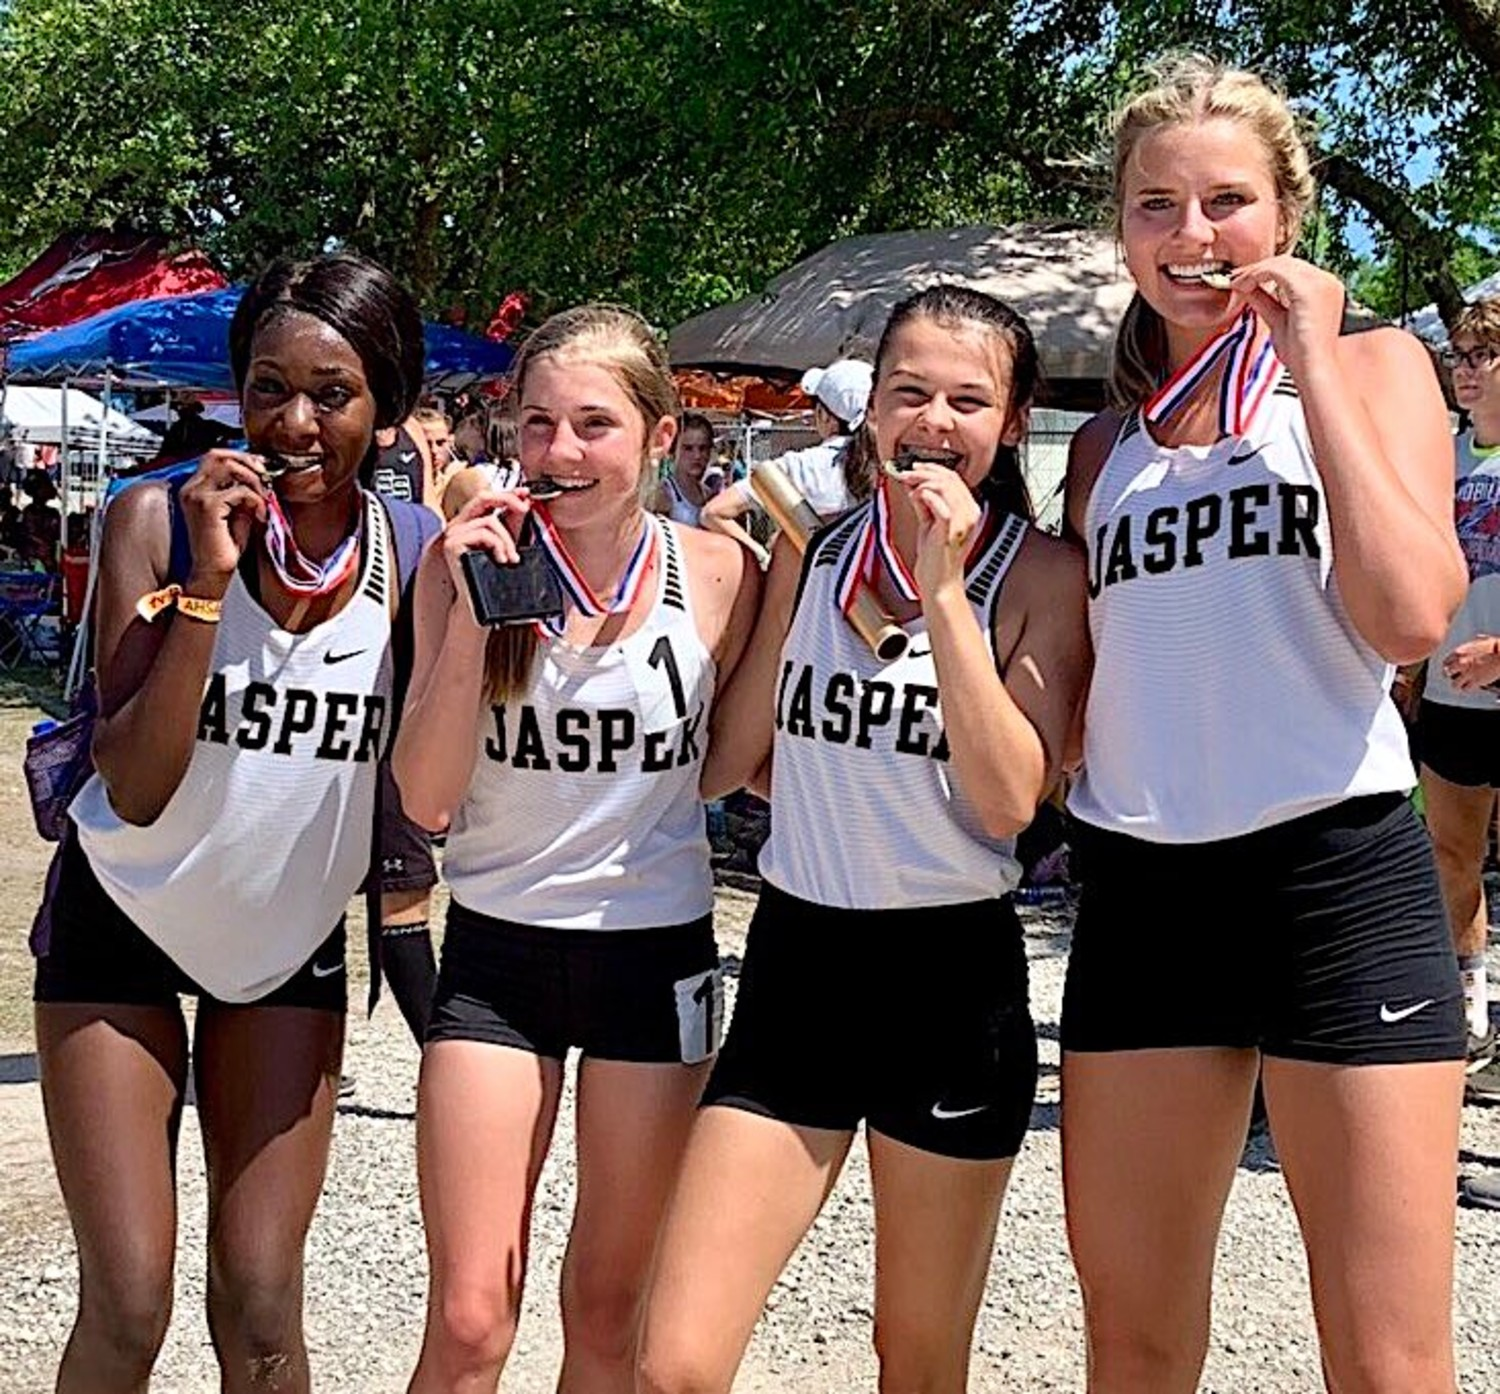 Jasper High School's 4x800-meter relay team of Makenna Lewis, Maci Beaty, Anna Mobley and Carlee Muncher won gold at the State Track Meet on Friday.